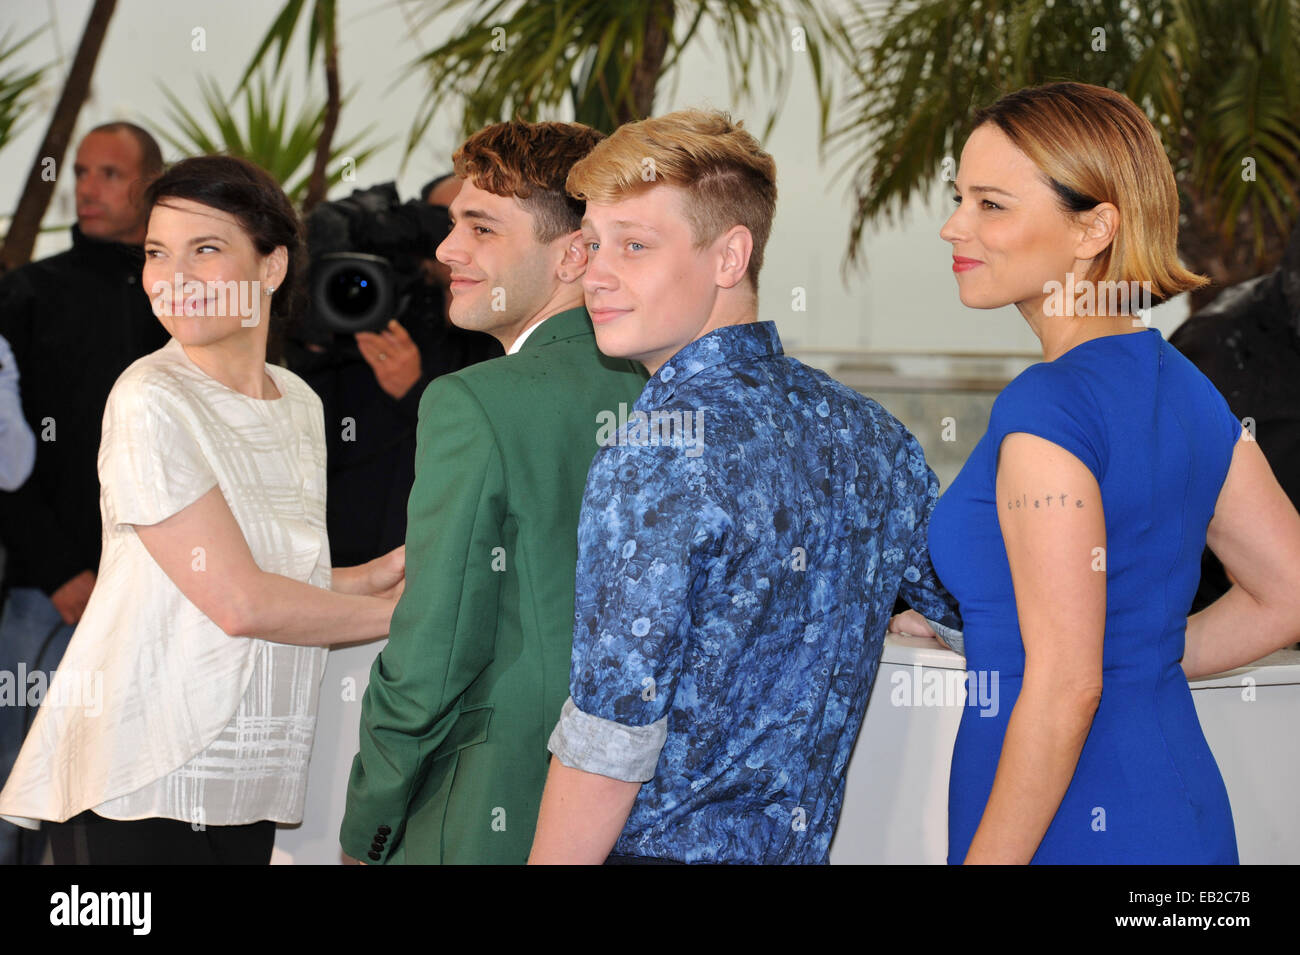 The 67th Annual Cannes Film Festival - Mommy - Photocall  Featuring: Suzanne Clement,Olivier Pilon,Xavier Dolan,Anne - Stock Image